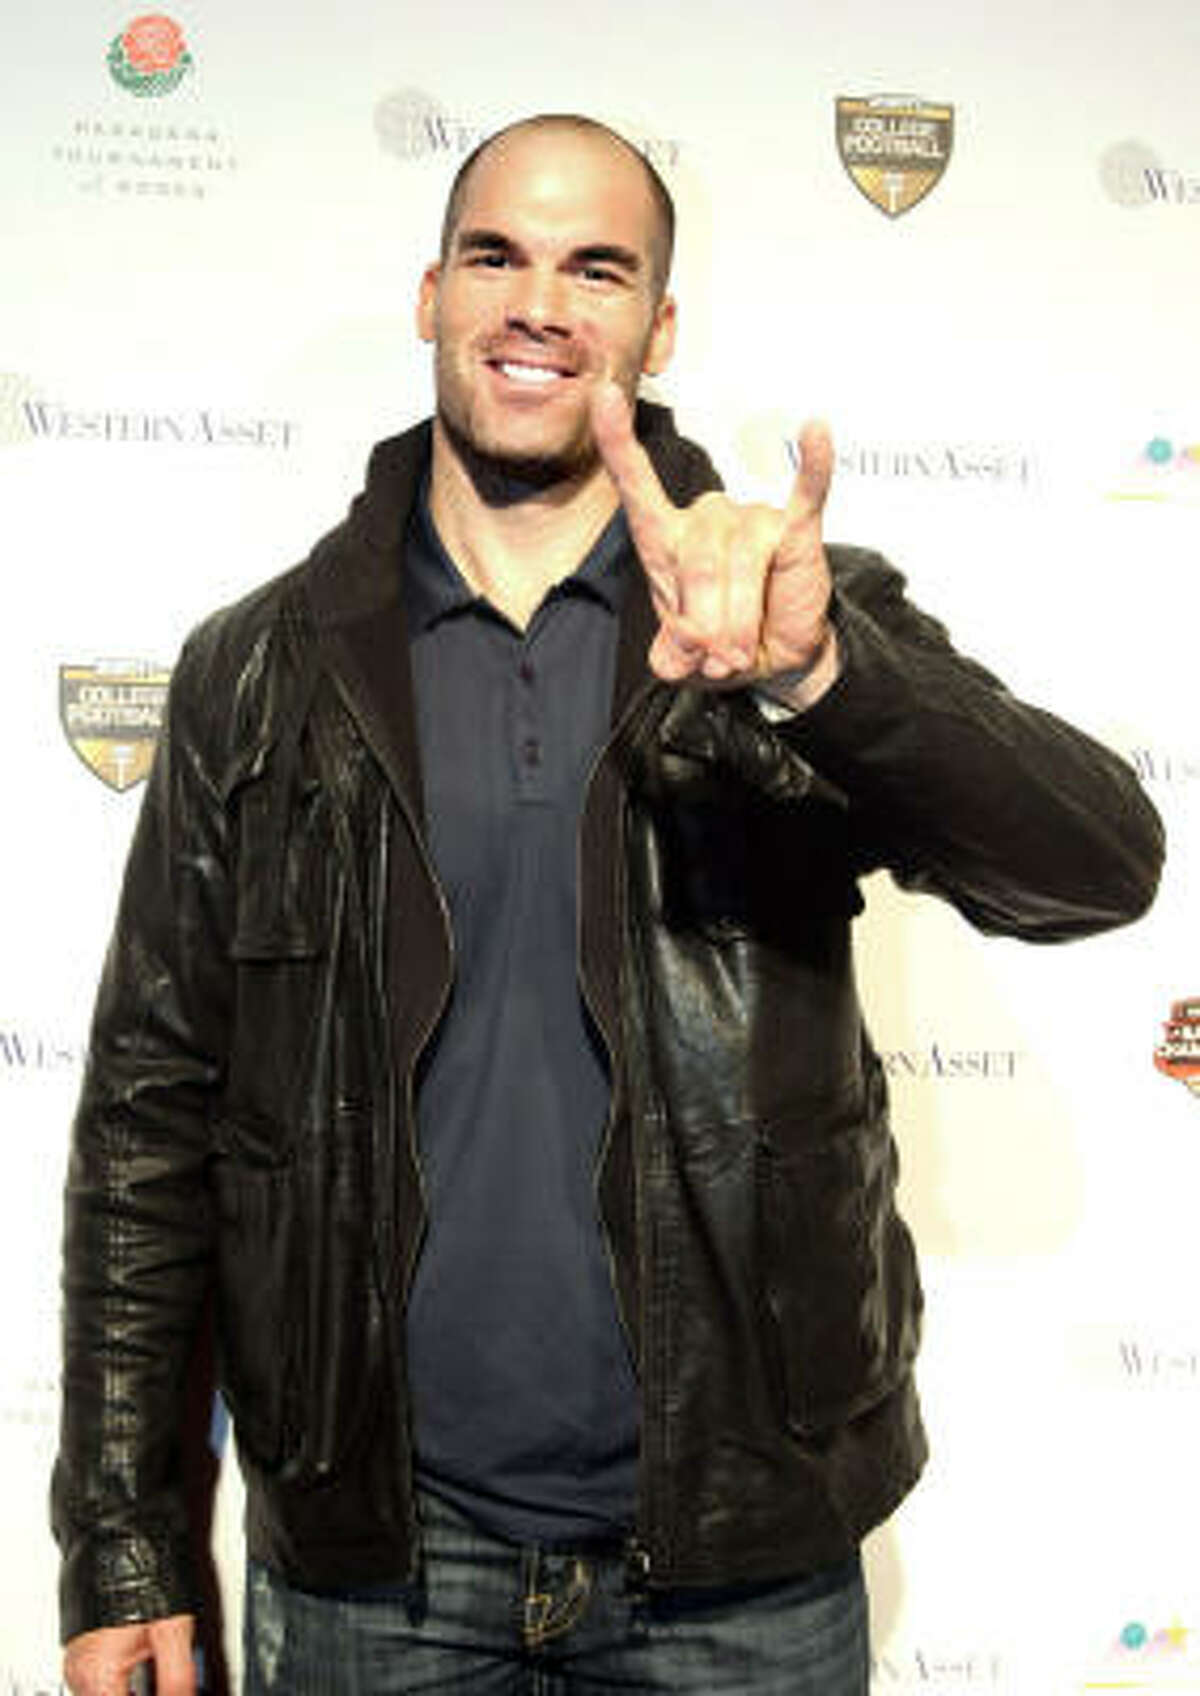 Actor Brandon Molale at the 2010 Official BCS National Championship Party in Pasadena.